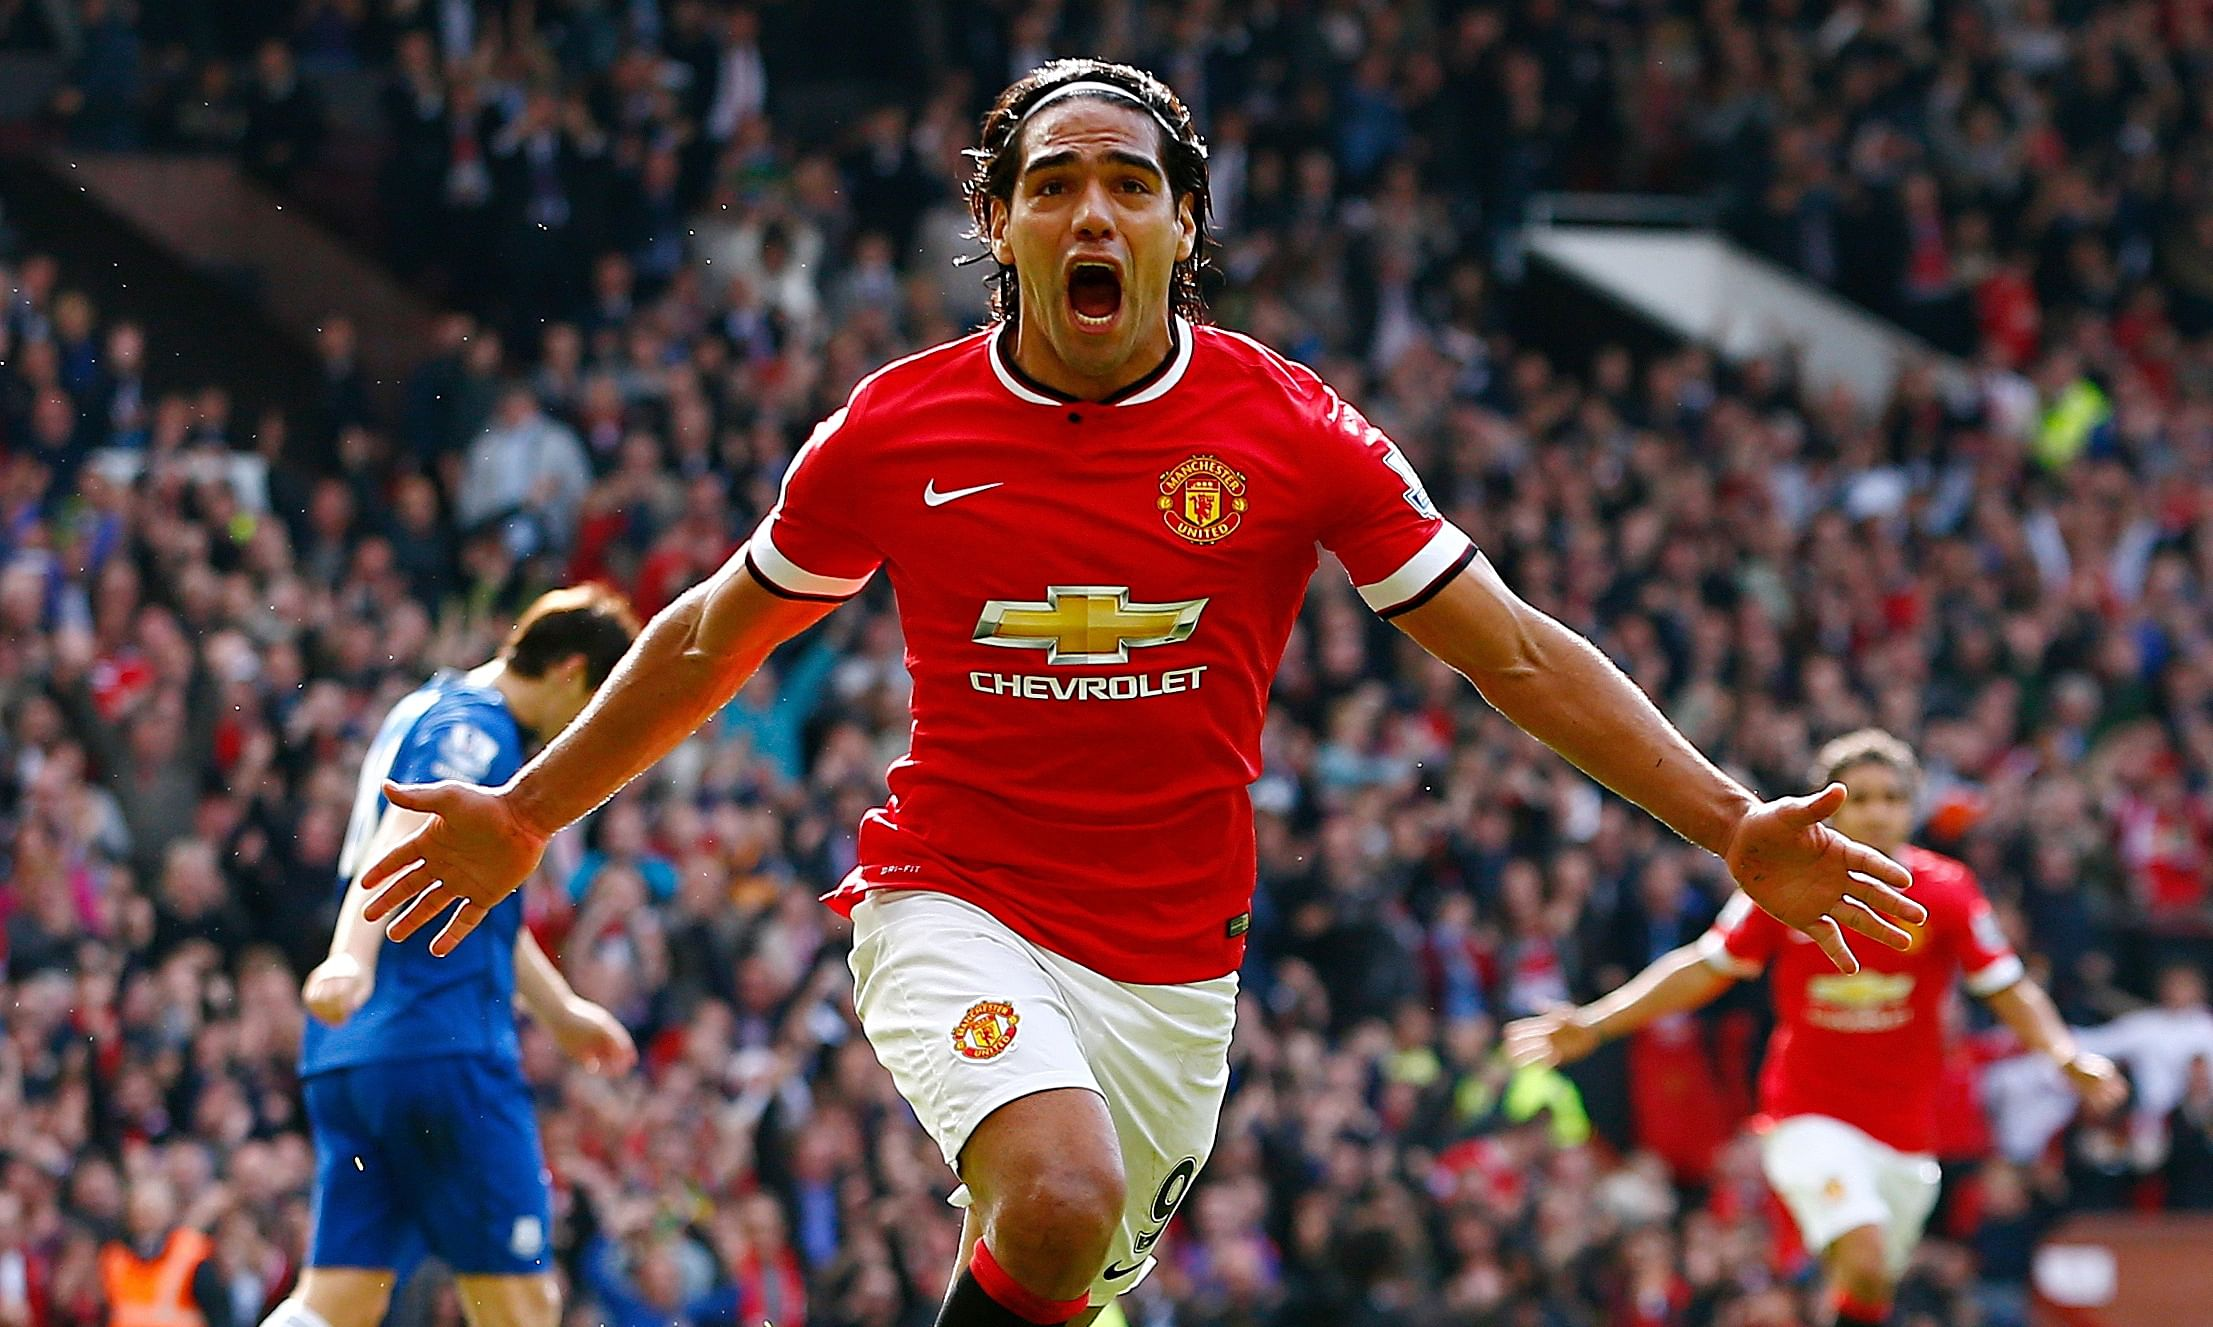 Should Manchester United sign Falcao permanently?